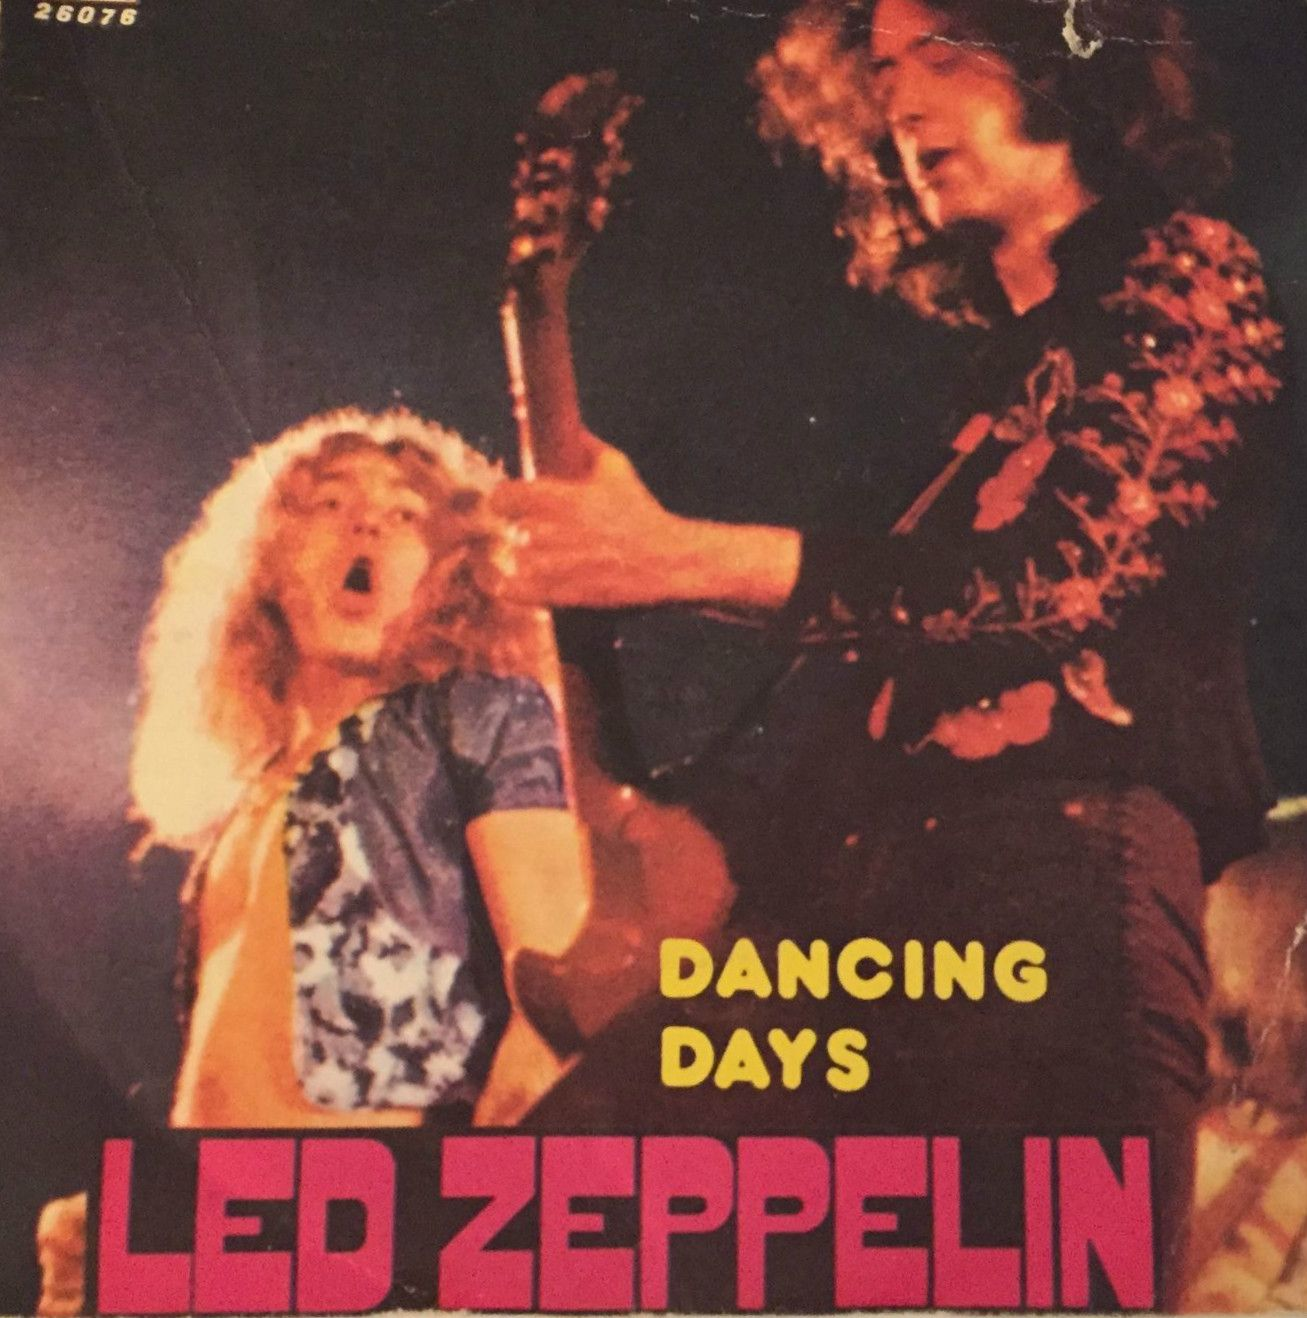 Led Zeppelin 45 RPM Cover https://www.facebook.com/FromTheWaybackMachine/